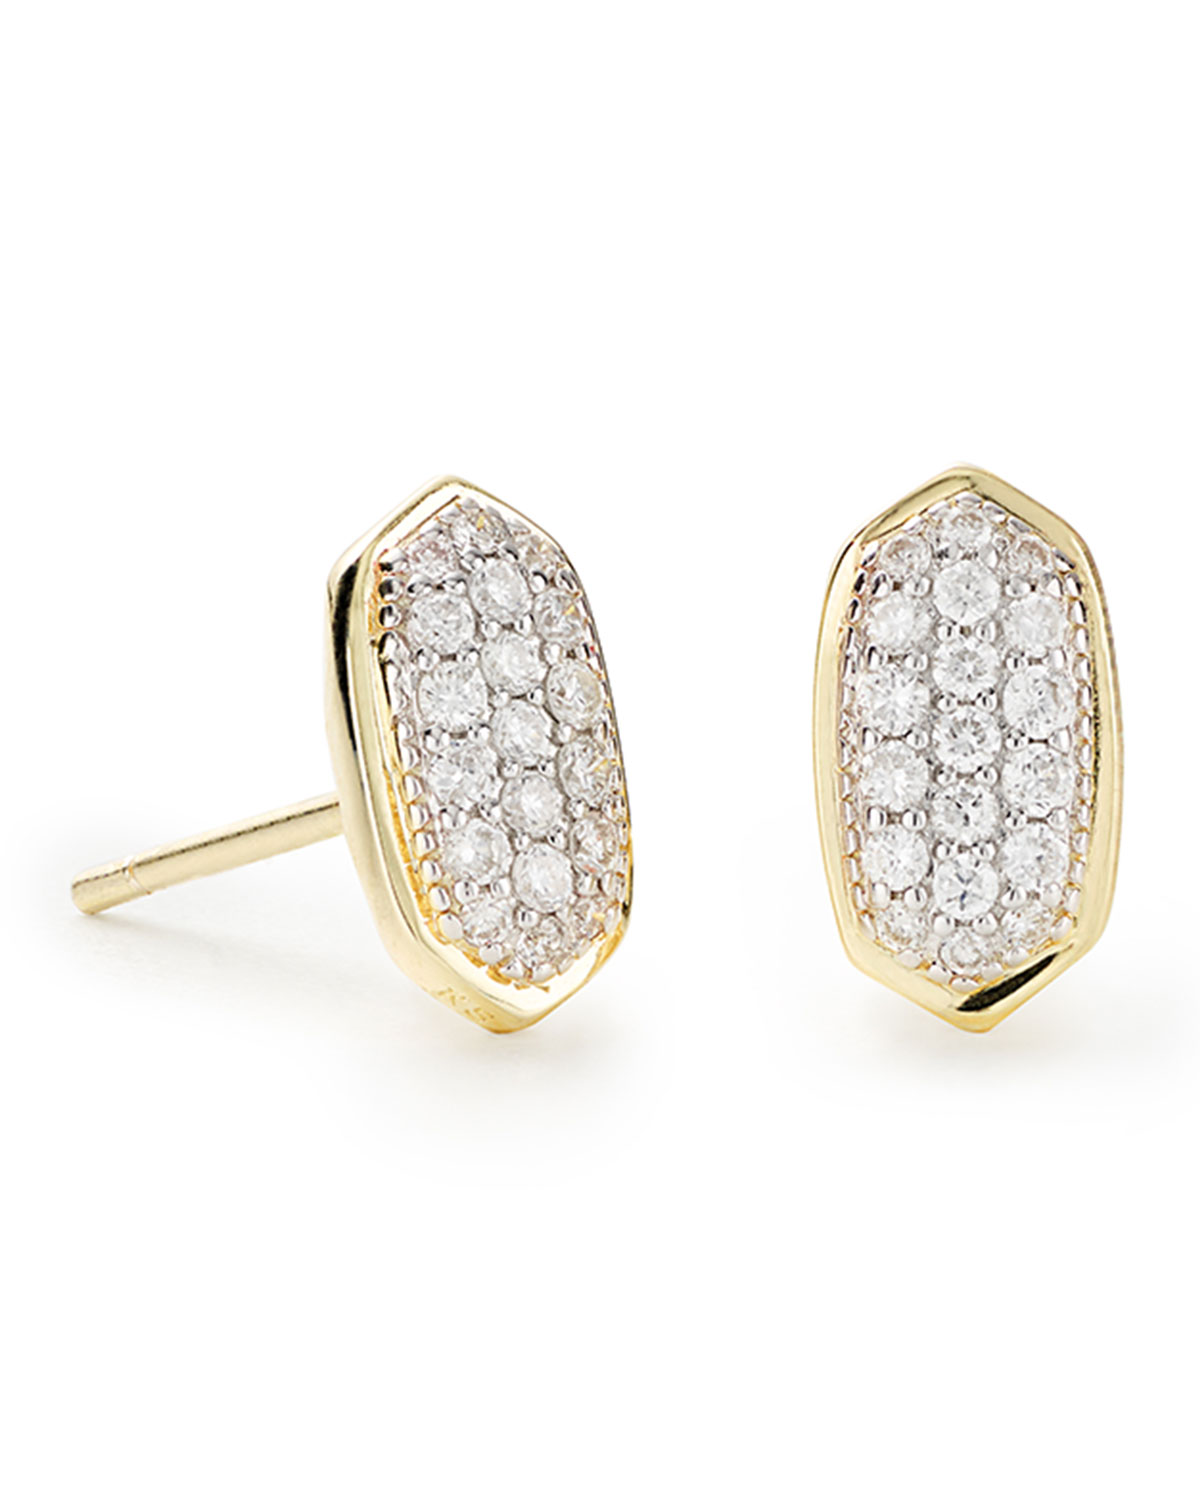 Amelee 14k Gold Diamond Stud Earrings